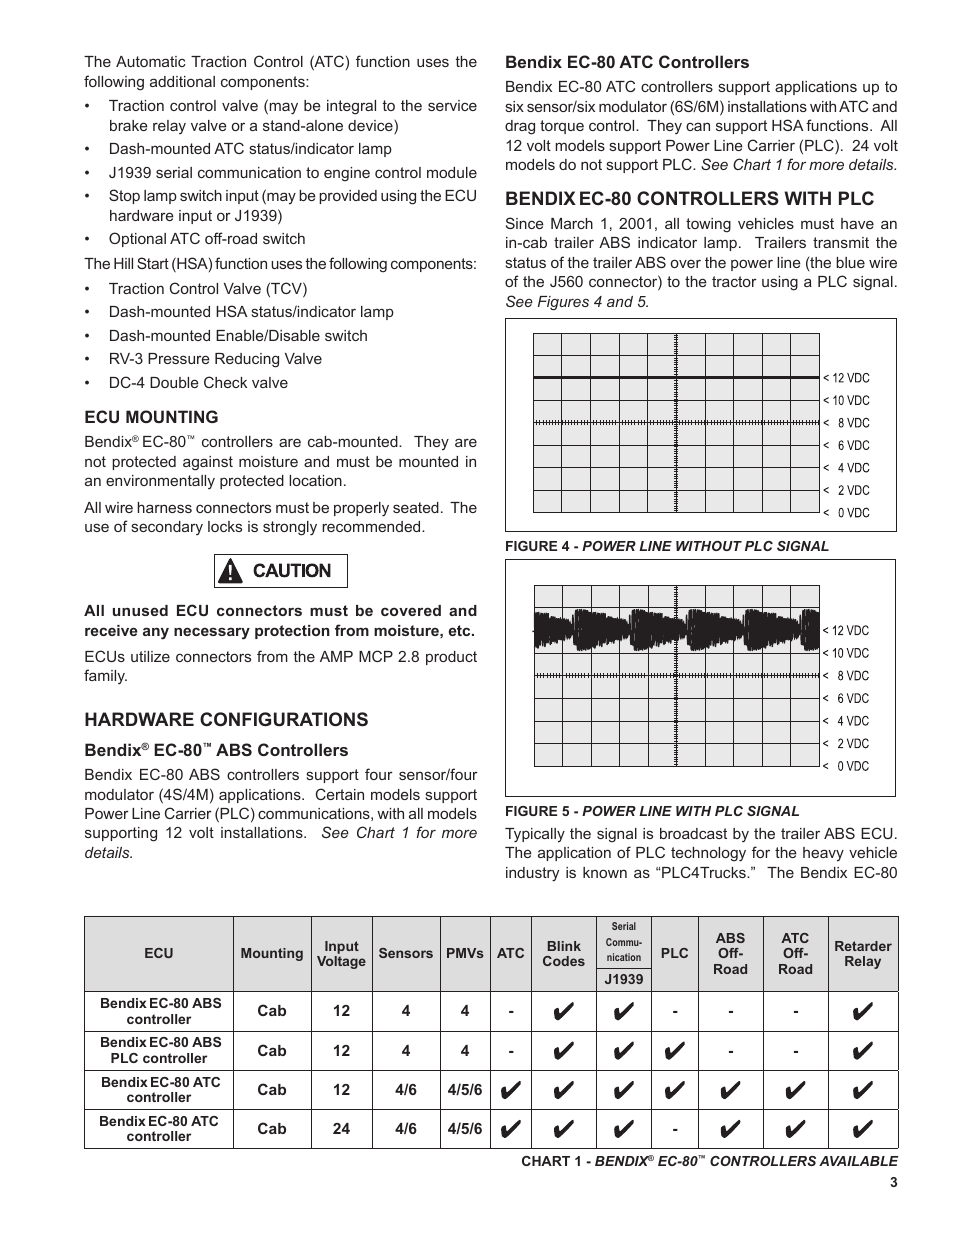 General safety guidelines, Bendix, Ec-80 controllers with plc | Hardware  configurations |